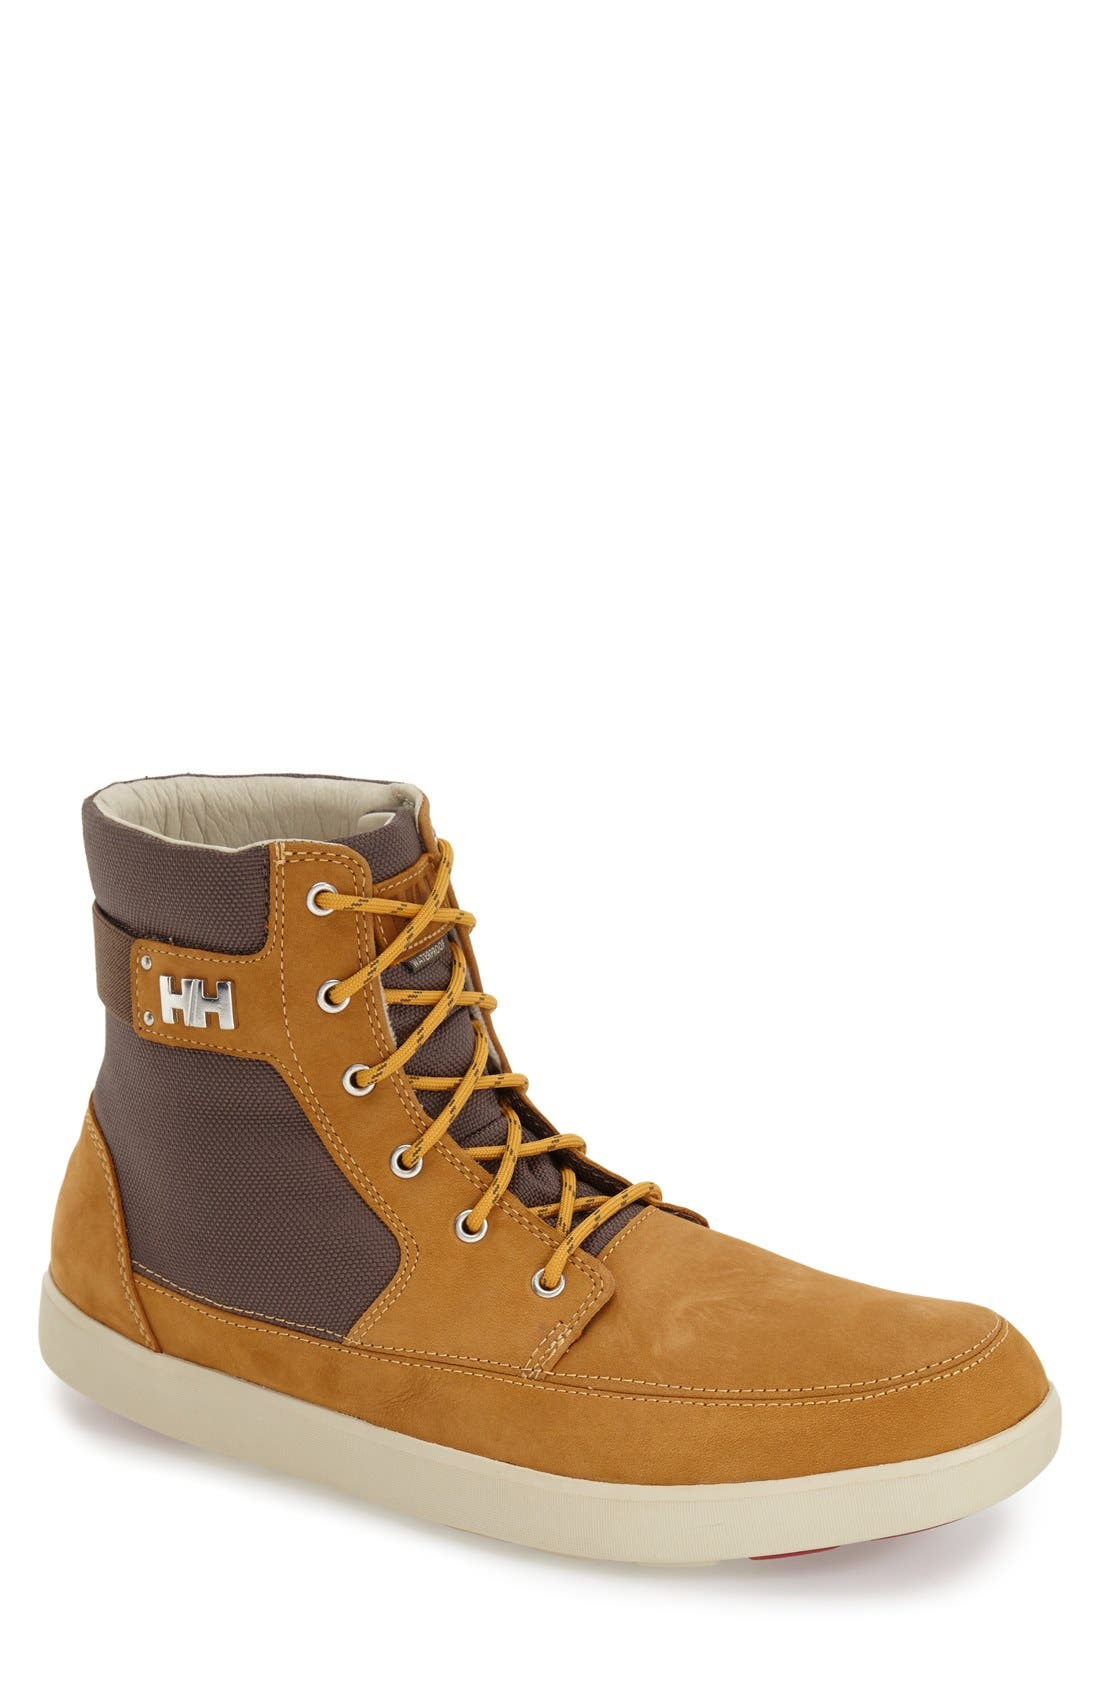 'Stockholm' Waterproof High Top Sneaker,                             Main thumbnail 1, color,                             New Wheat